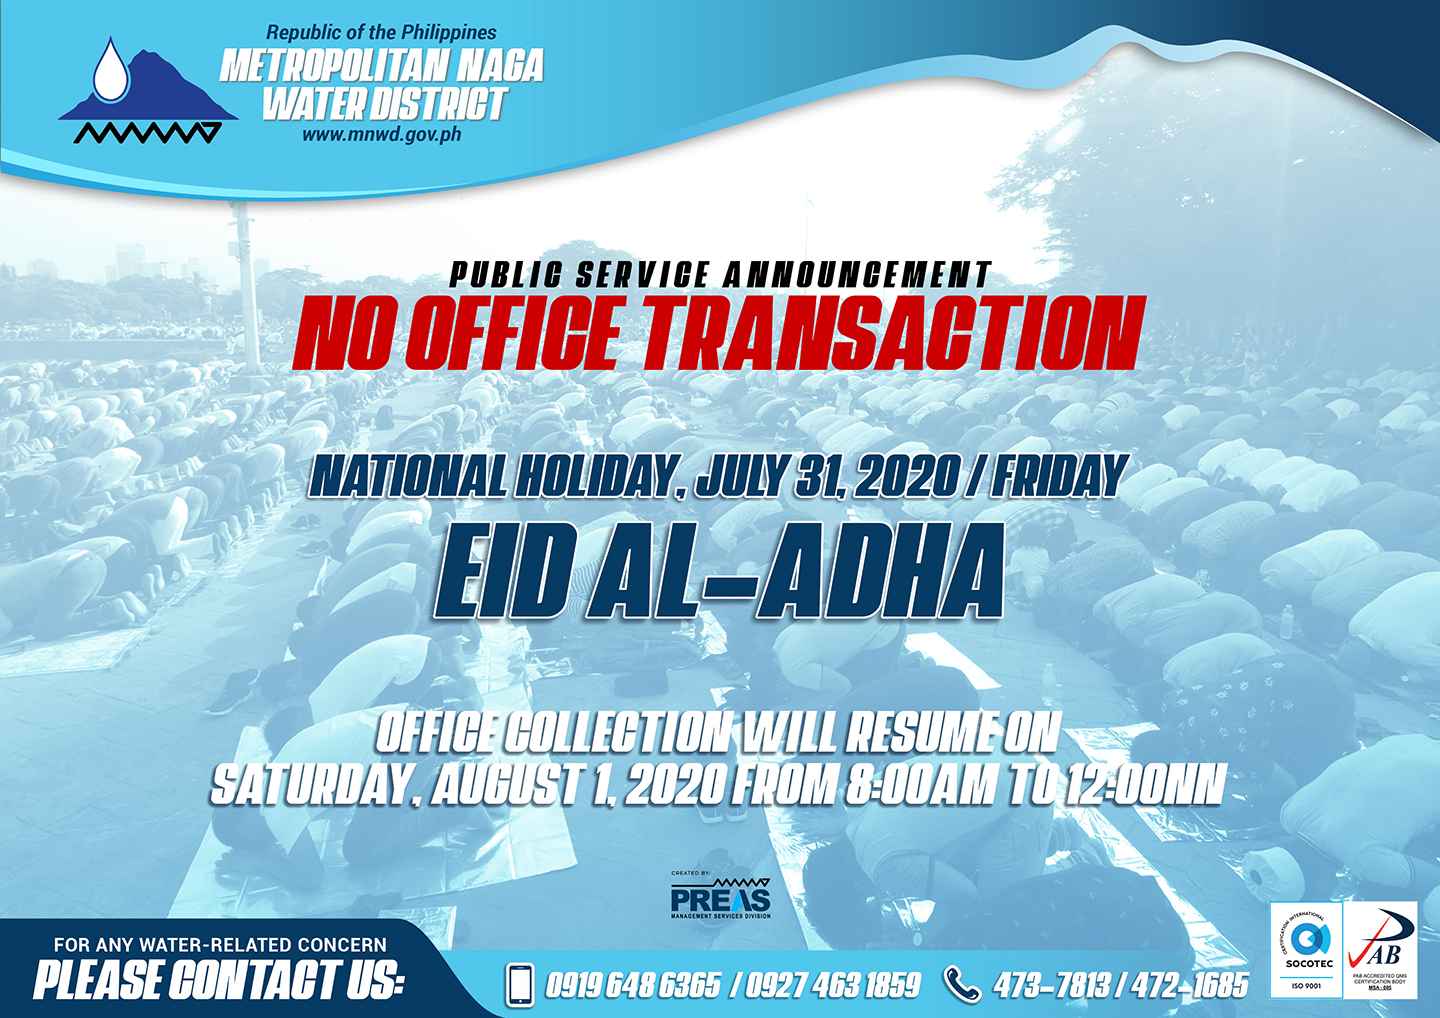 No-Office-Collection---07312020---Eid-Al-Adha